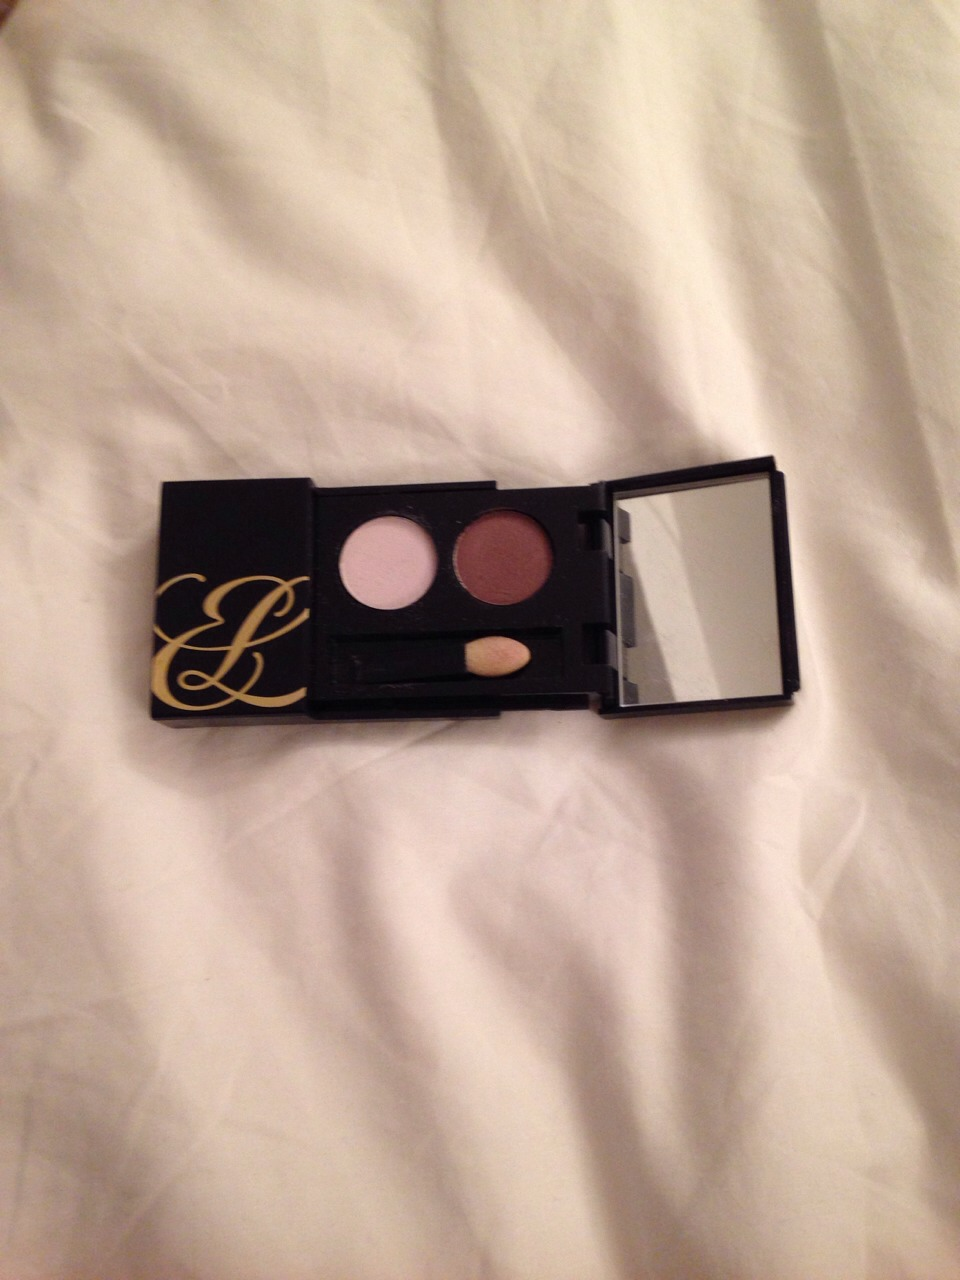 2⃣ - EYE SHADOW DUO You might think that eye shadow may be a bit too snazzy for you but if you get a neutral colour it really adds a nice touch 👌 (Mine Is Estée Lauder pure color eyeshadow)